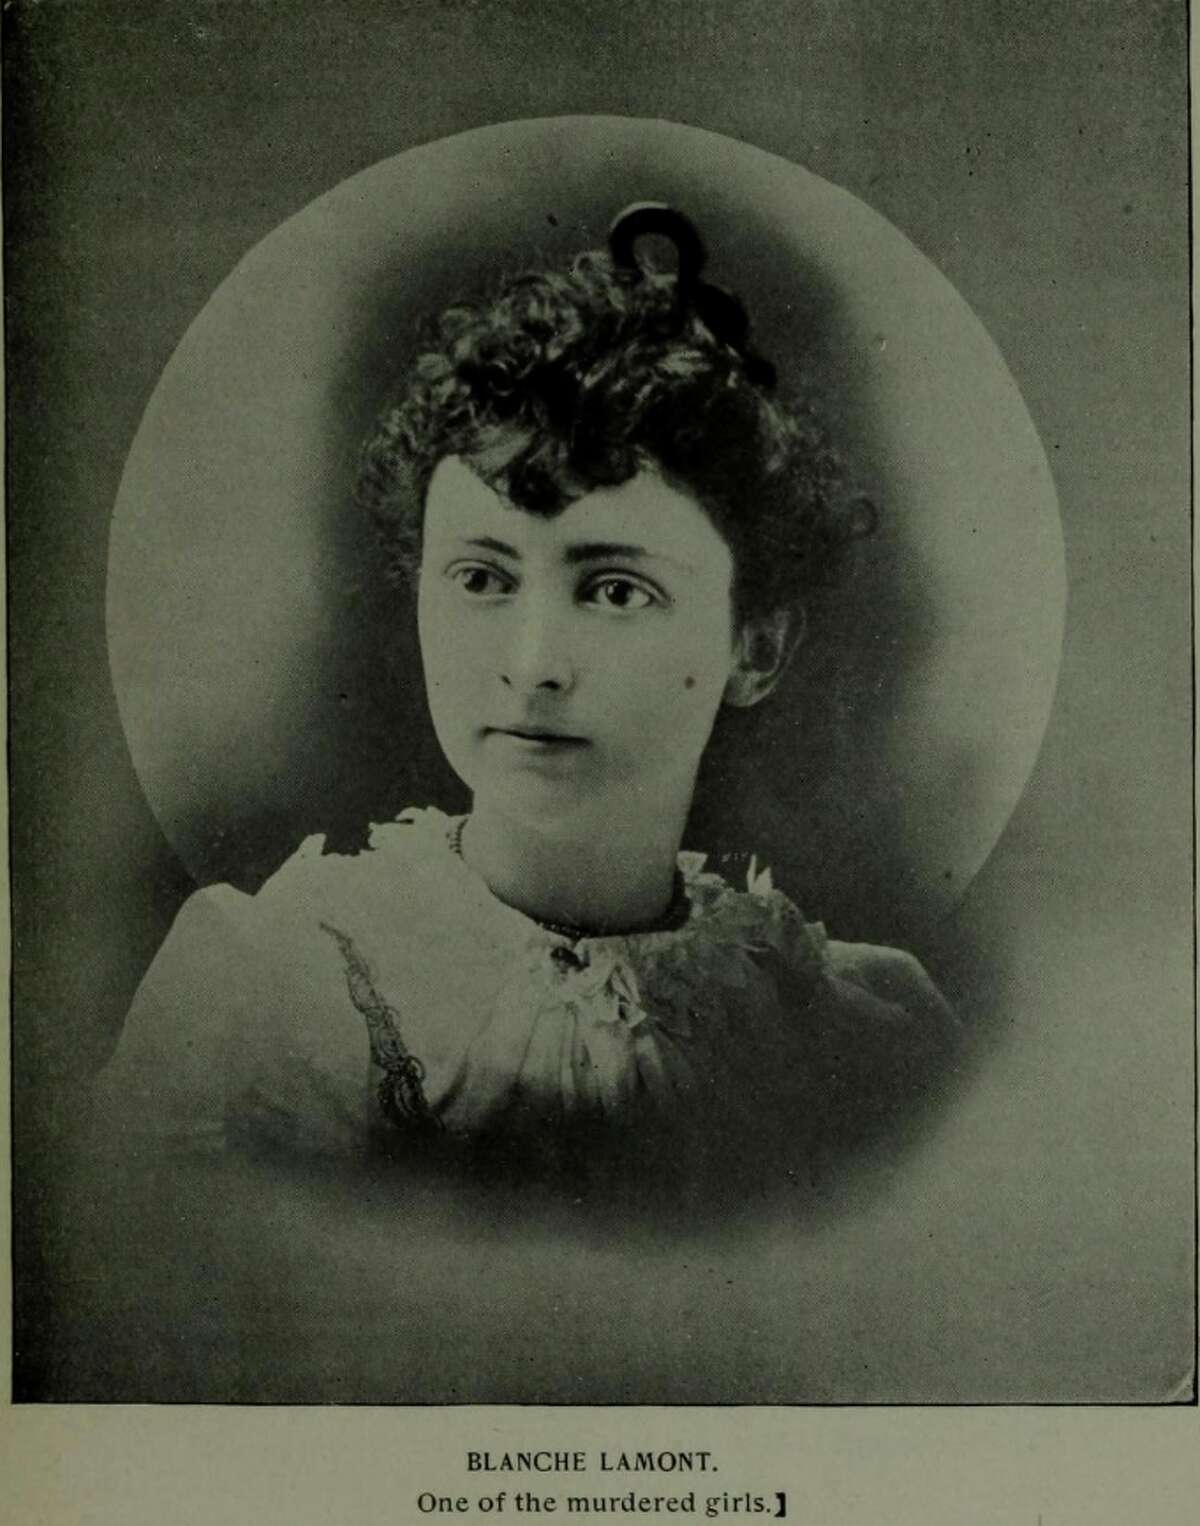 A photograph of Blanche Lamont, Durrant's first victim.